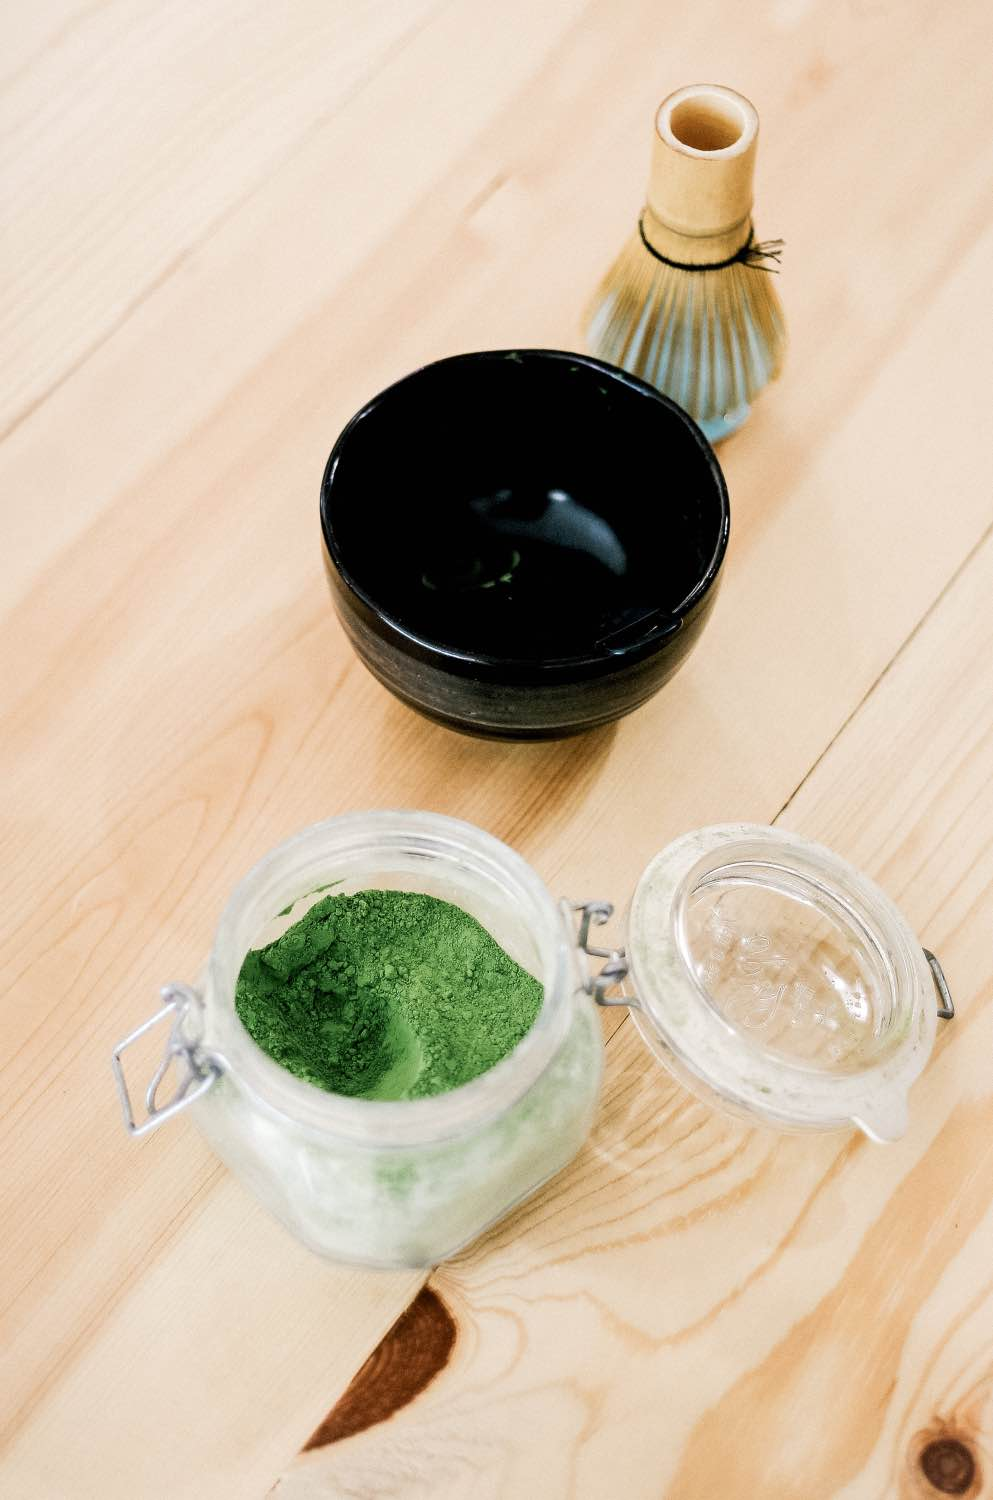 diy matcha bath soak tutorial pop shop america craft tutorial